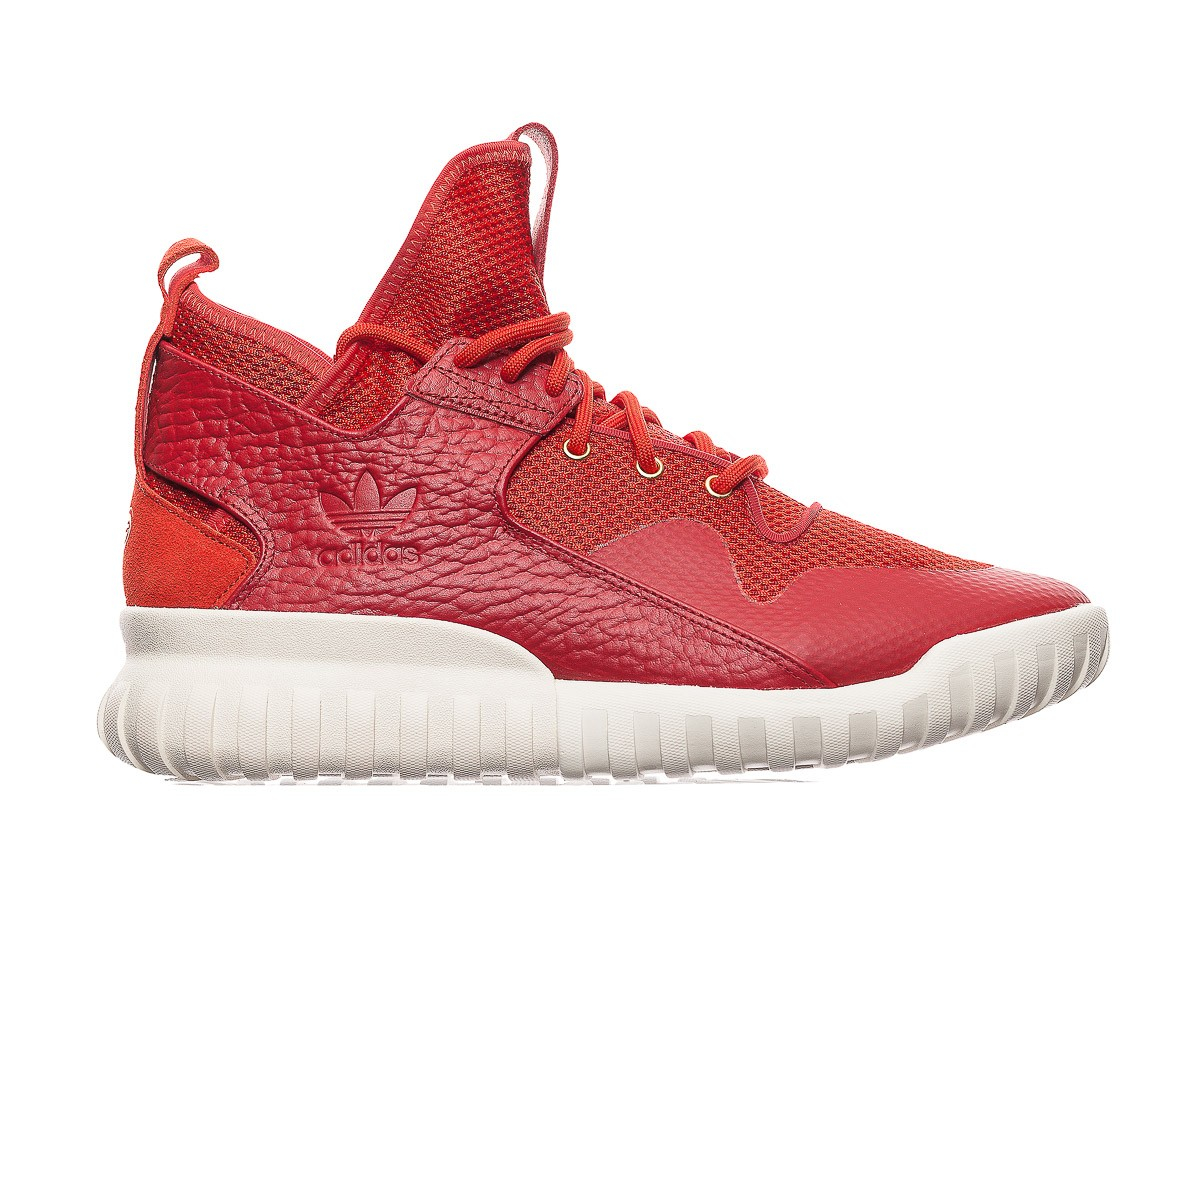 Adidas Tubular Invader 2.0 chaussures cheap www